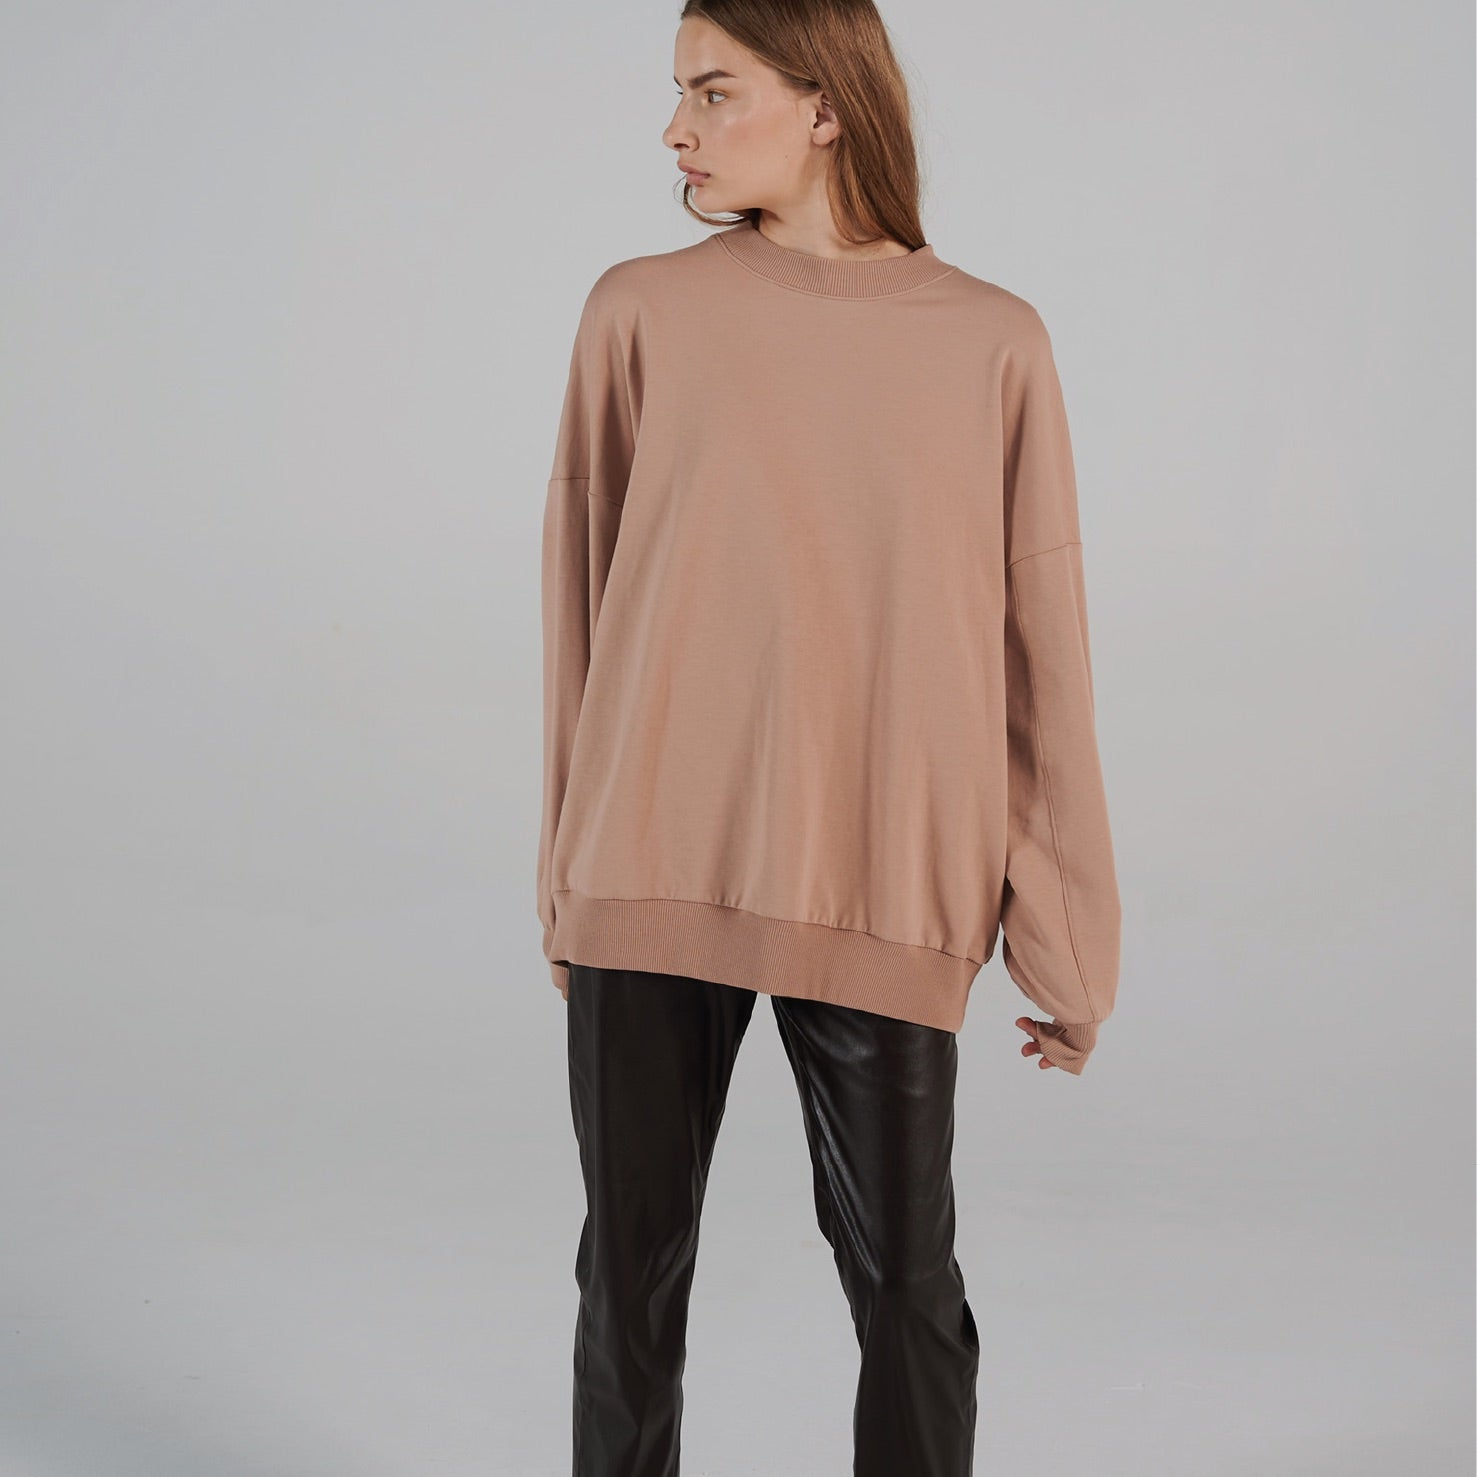 Oversized Sweater Nude | LIFETIME collection